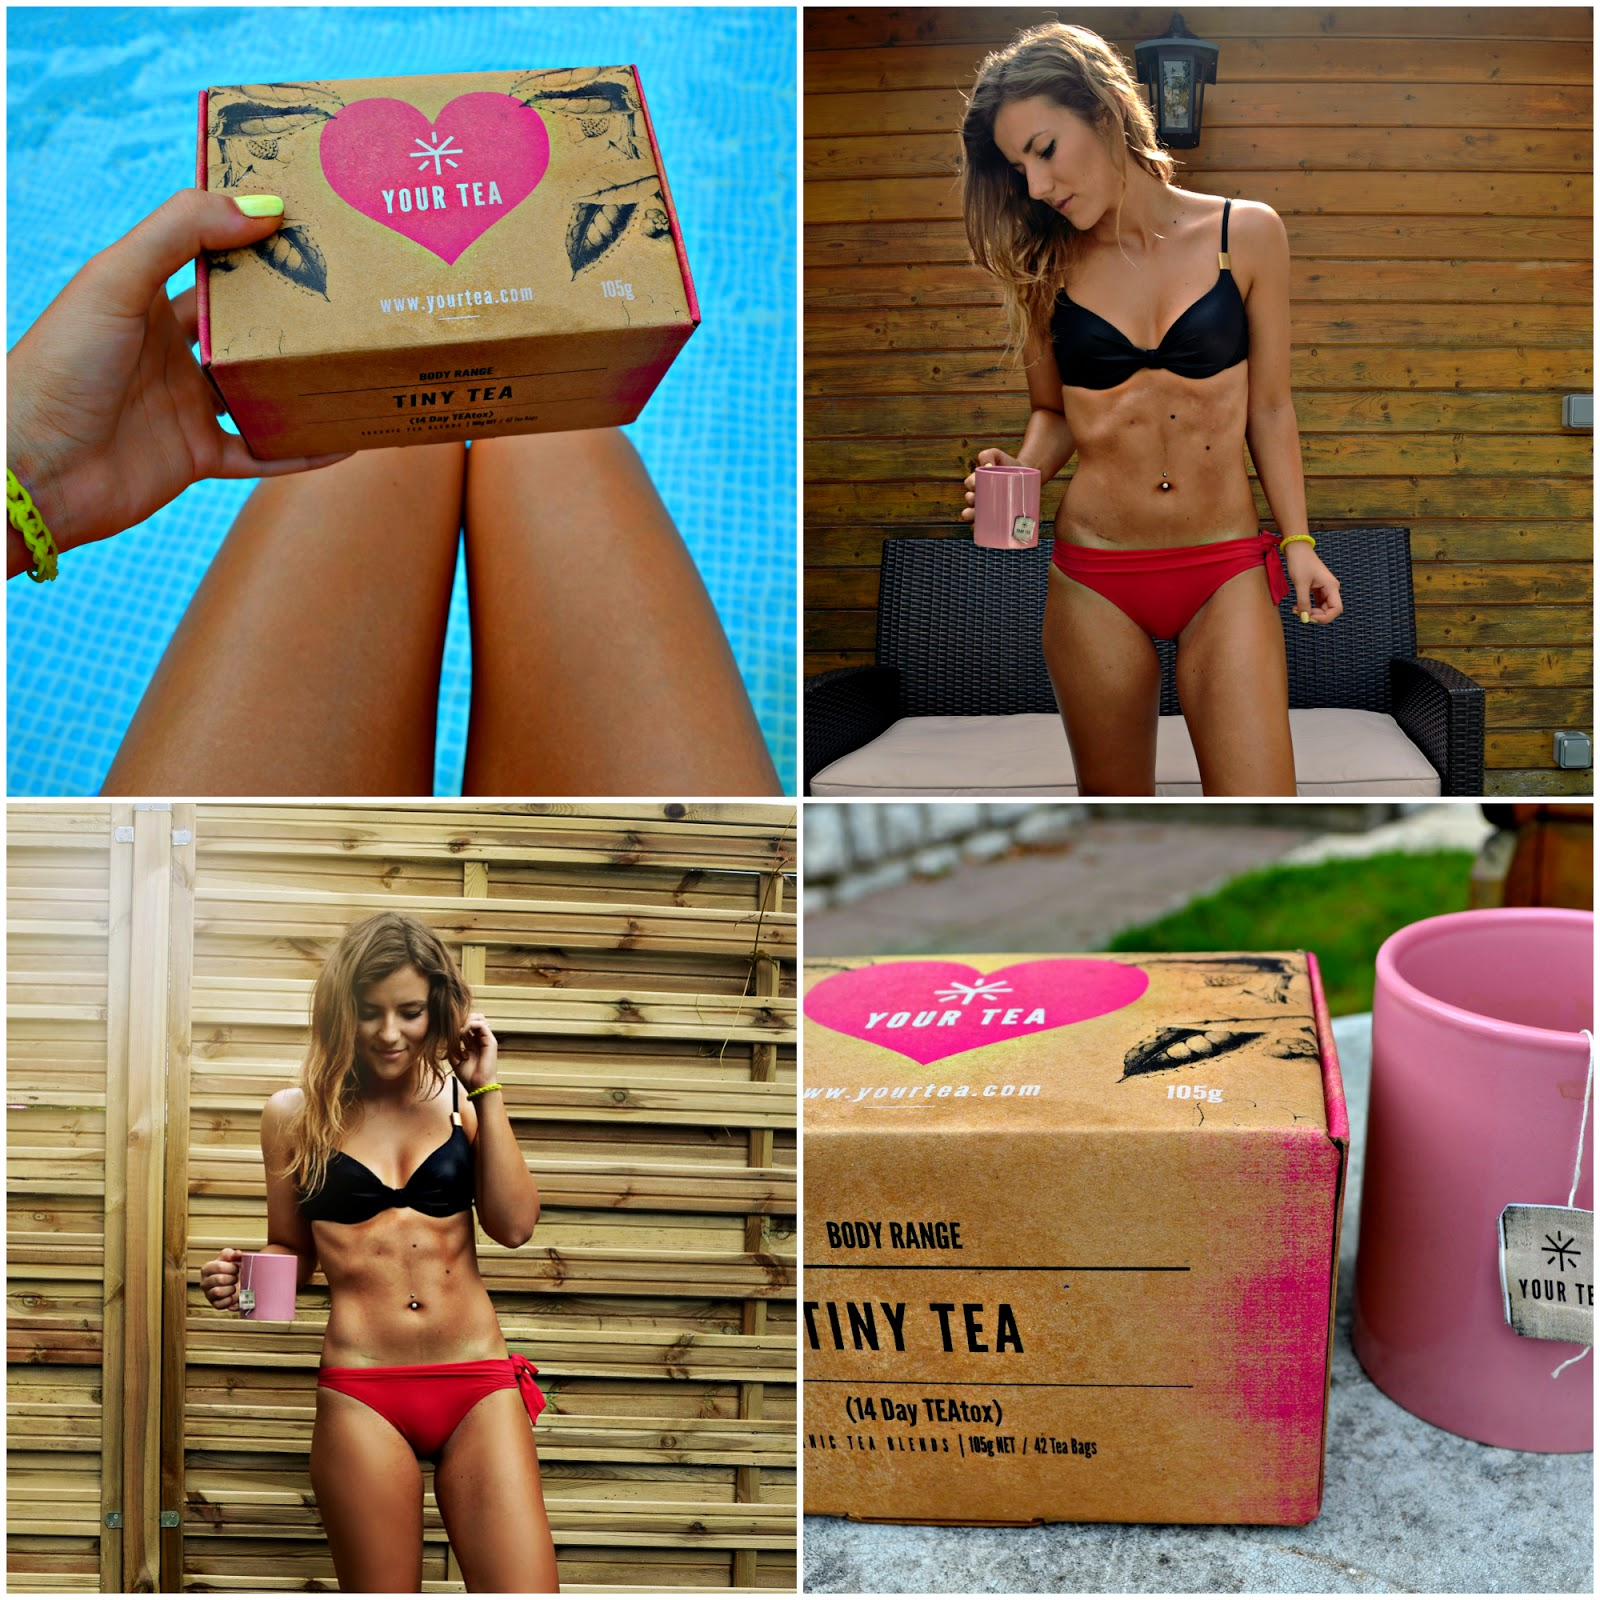 http://www.theblondeandbrowngirl.com/2014/09/your-tea-teatox-ou-intox.html